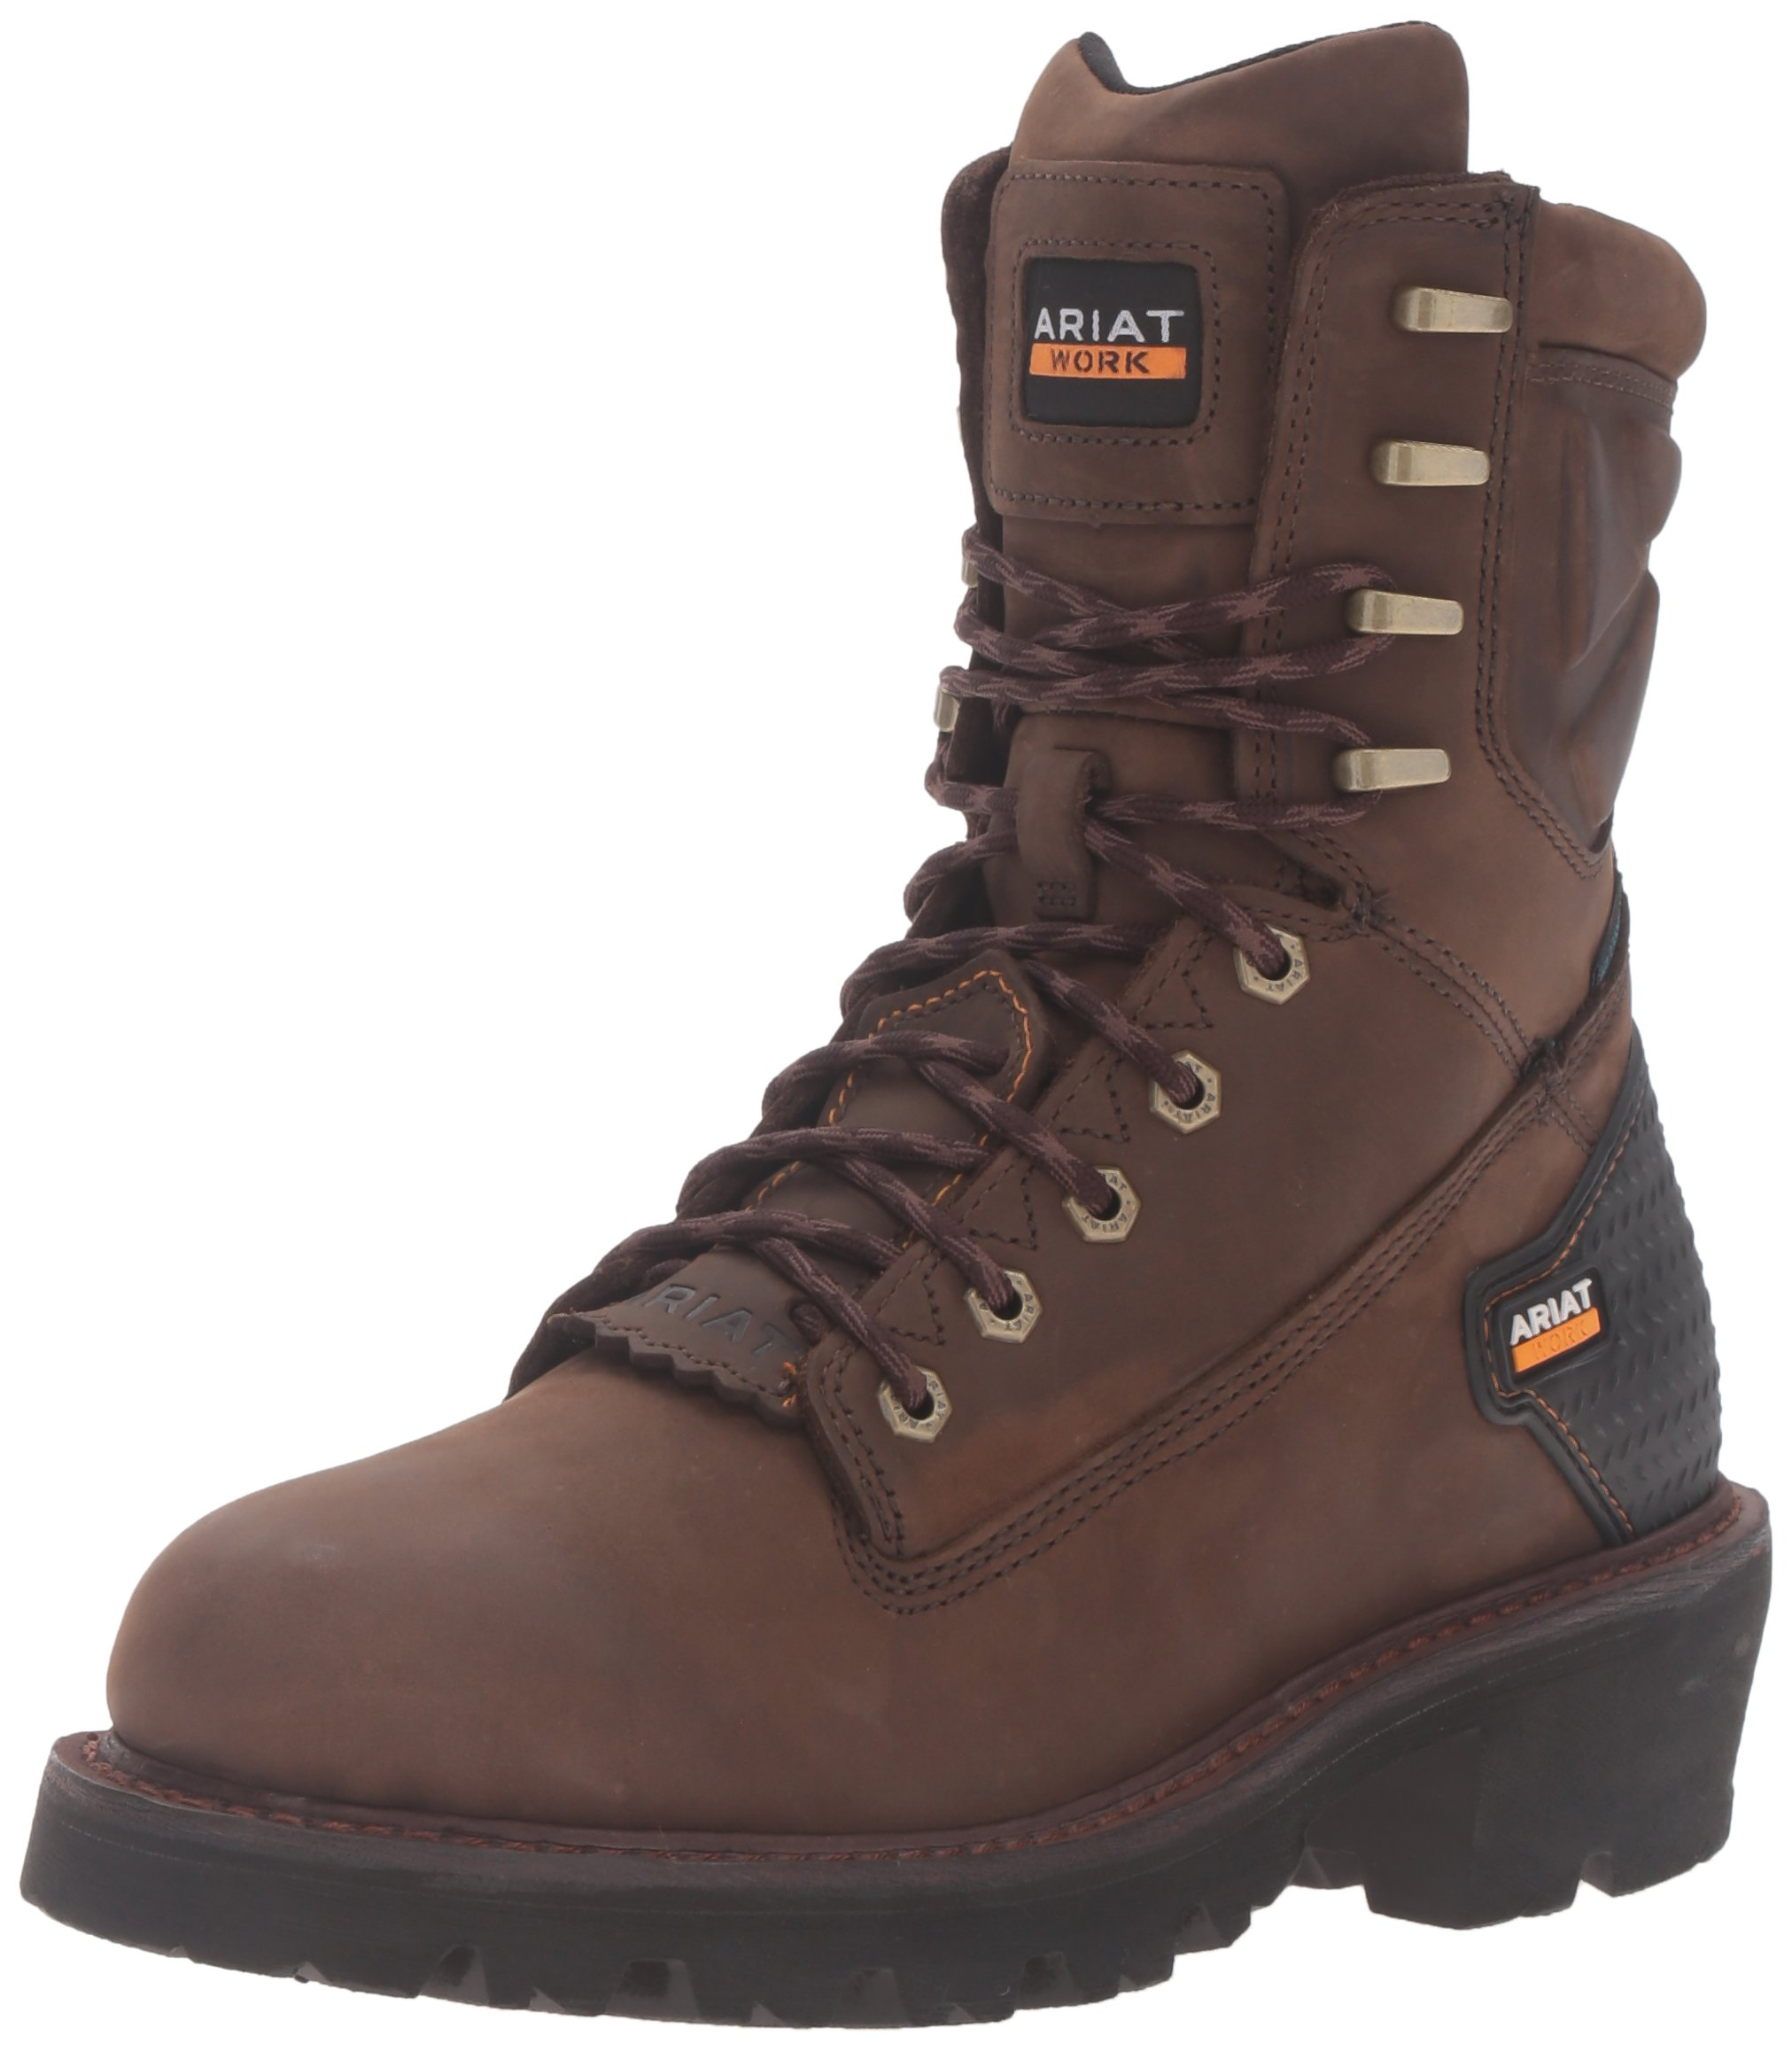 Ariat Men's Powerline 8'' H2O Work Boot, Oily Distressed Brown, 14 D US by ARIAT